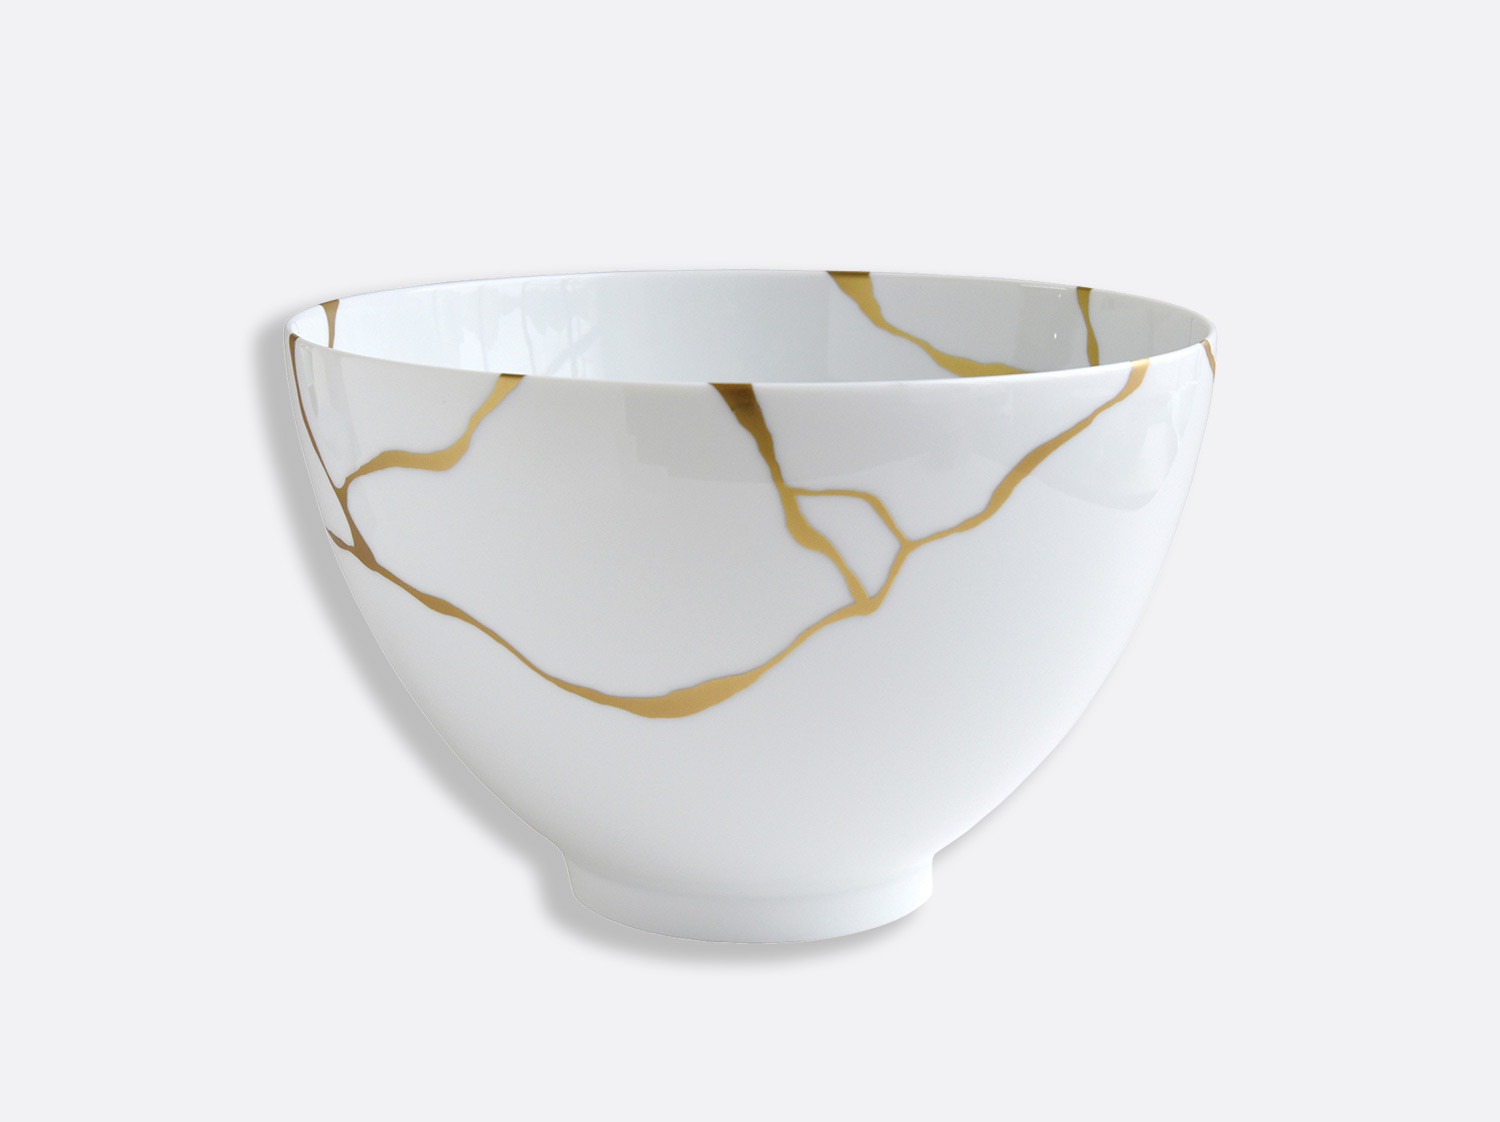 Saladier haut 27 cm 4,2 L en porcelaine de la collection Kintsugi Bernardaud